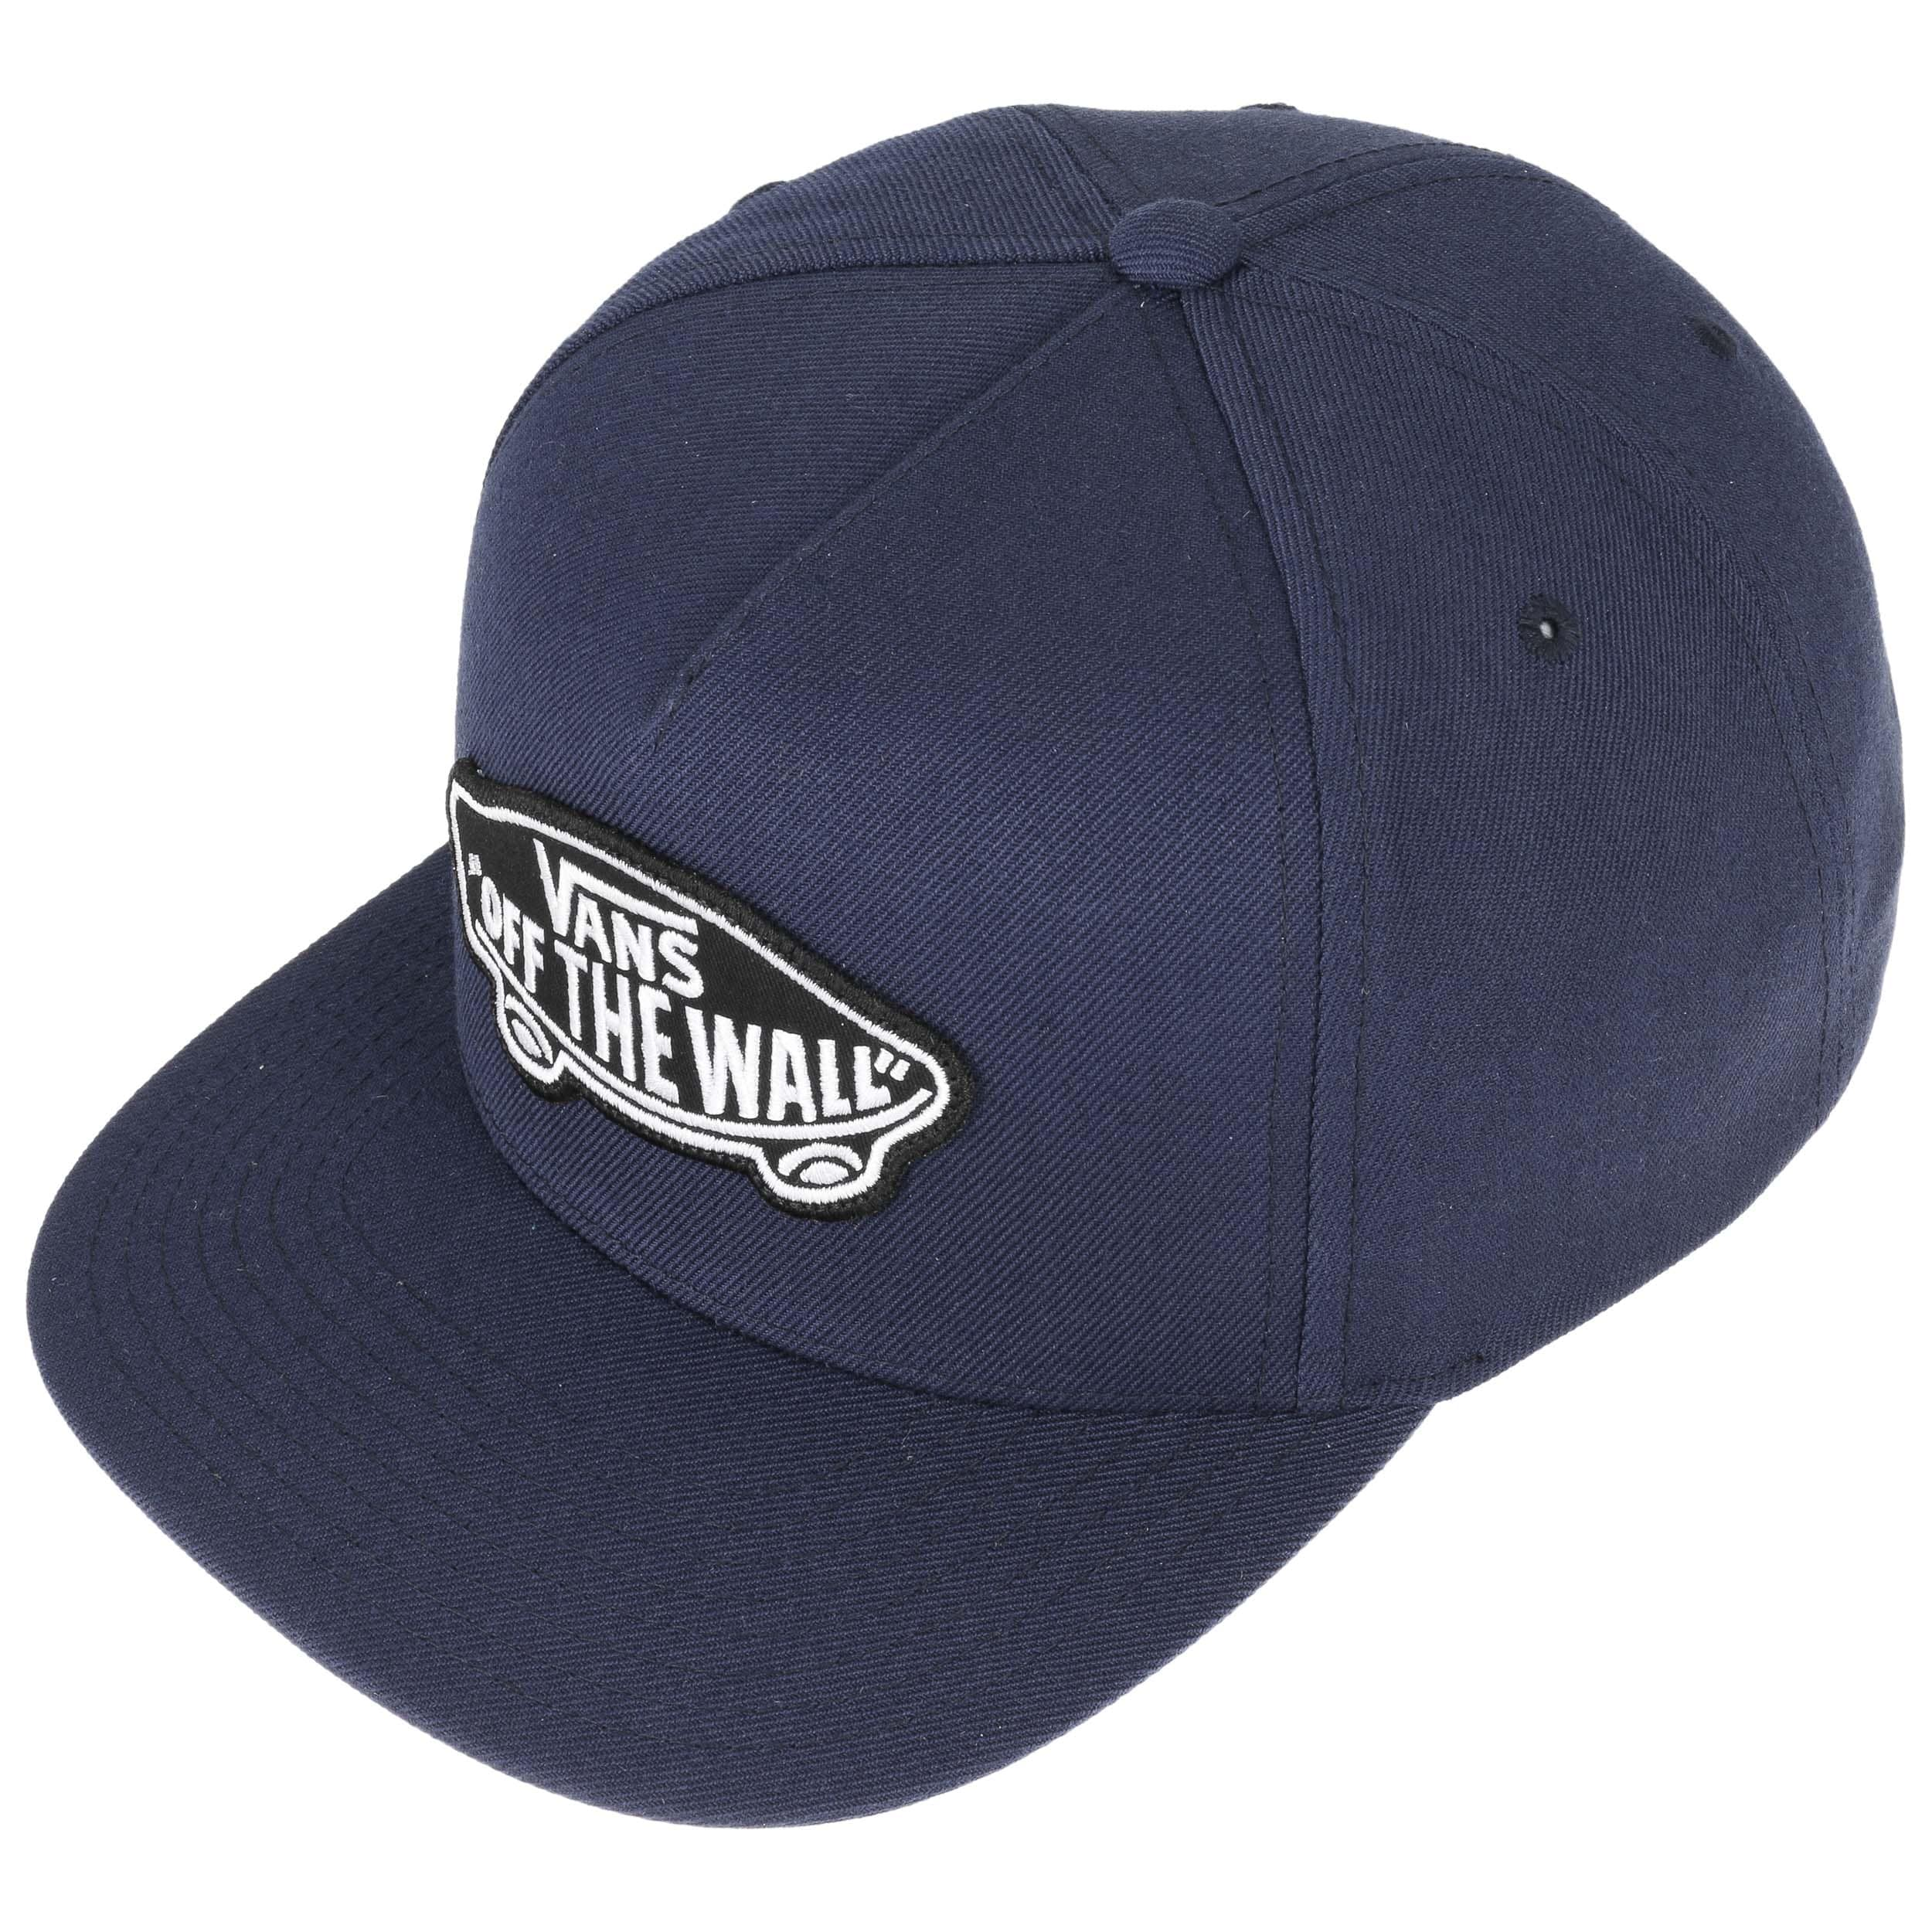 4927bc249ad0 ... Classic Patch Snapback Cap by Vans - navy 1 ...